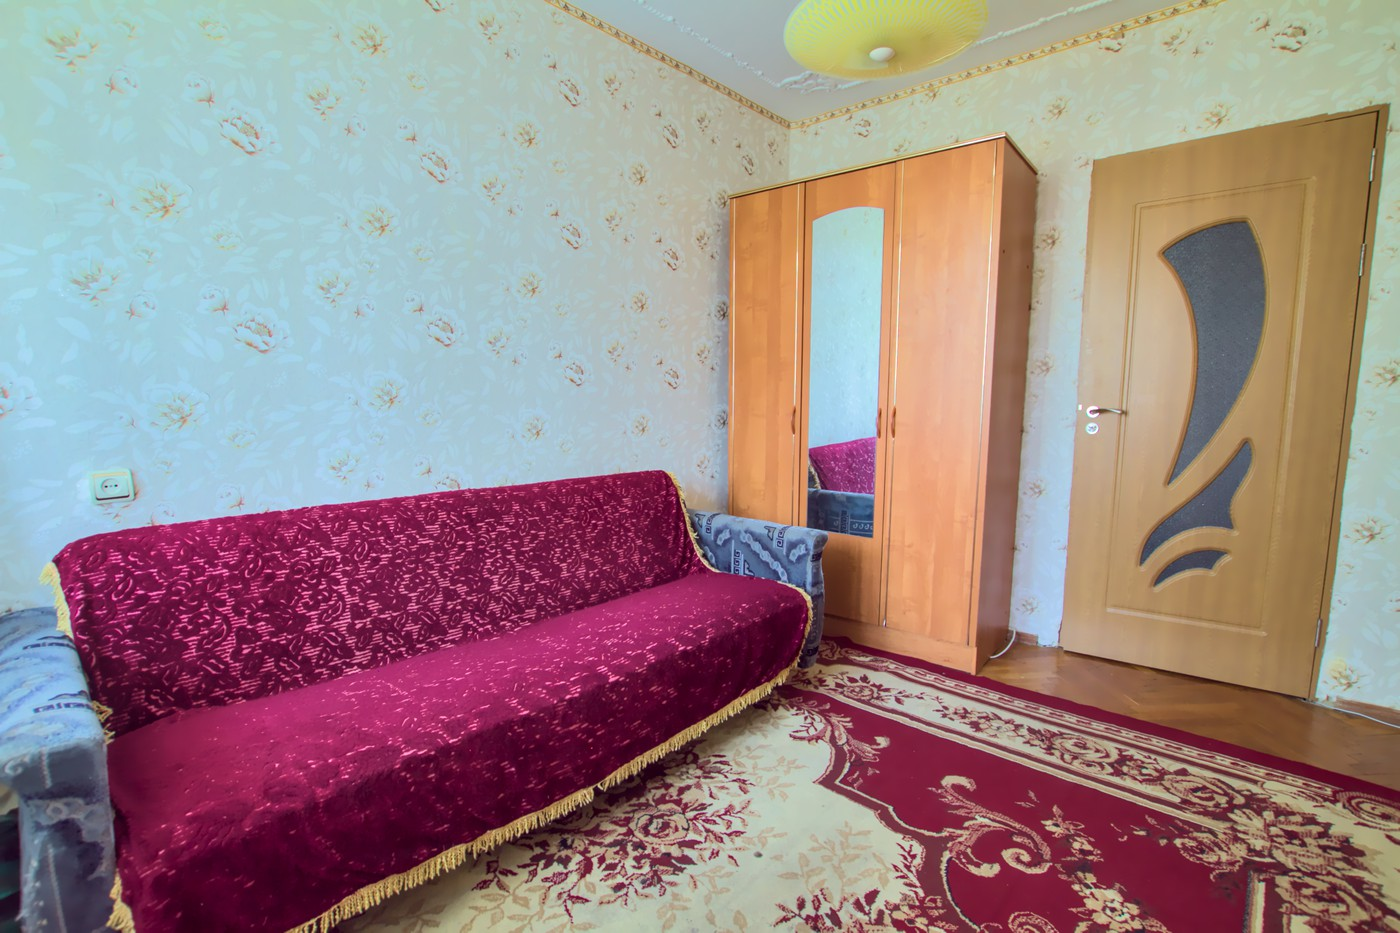 Cheap_rent_apartmet_Chisinau_Riscani_4.jpg